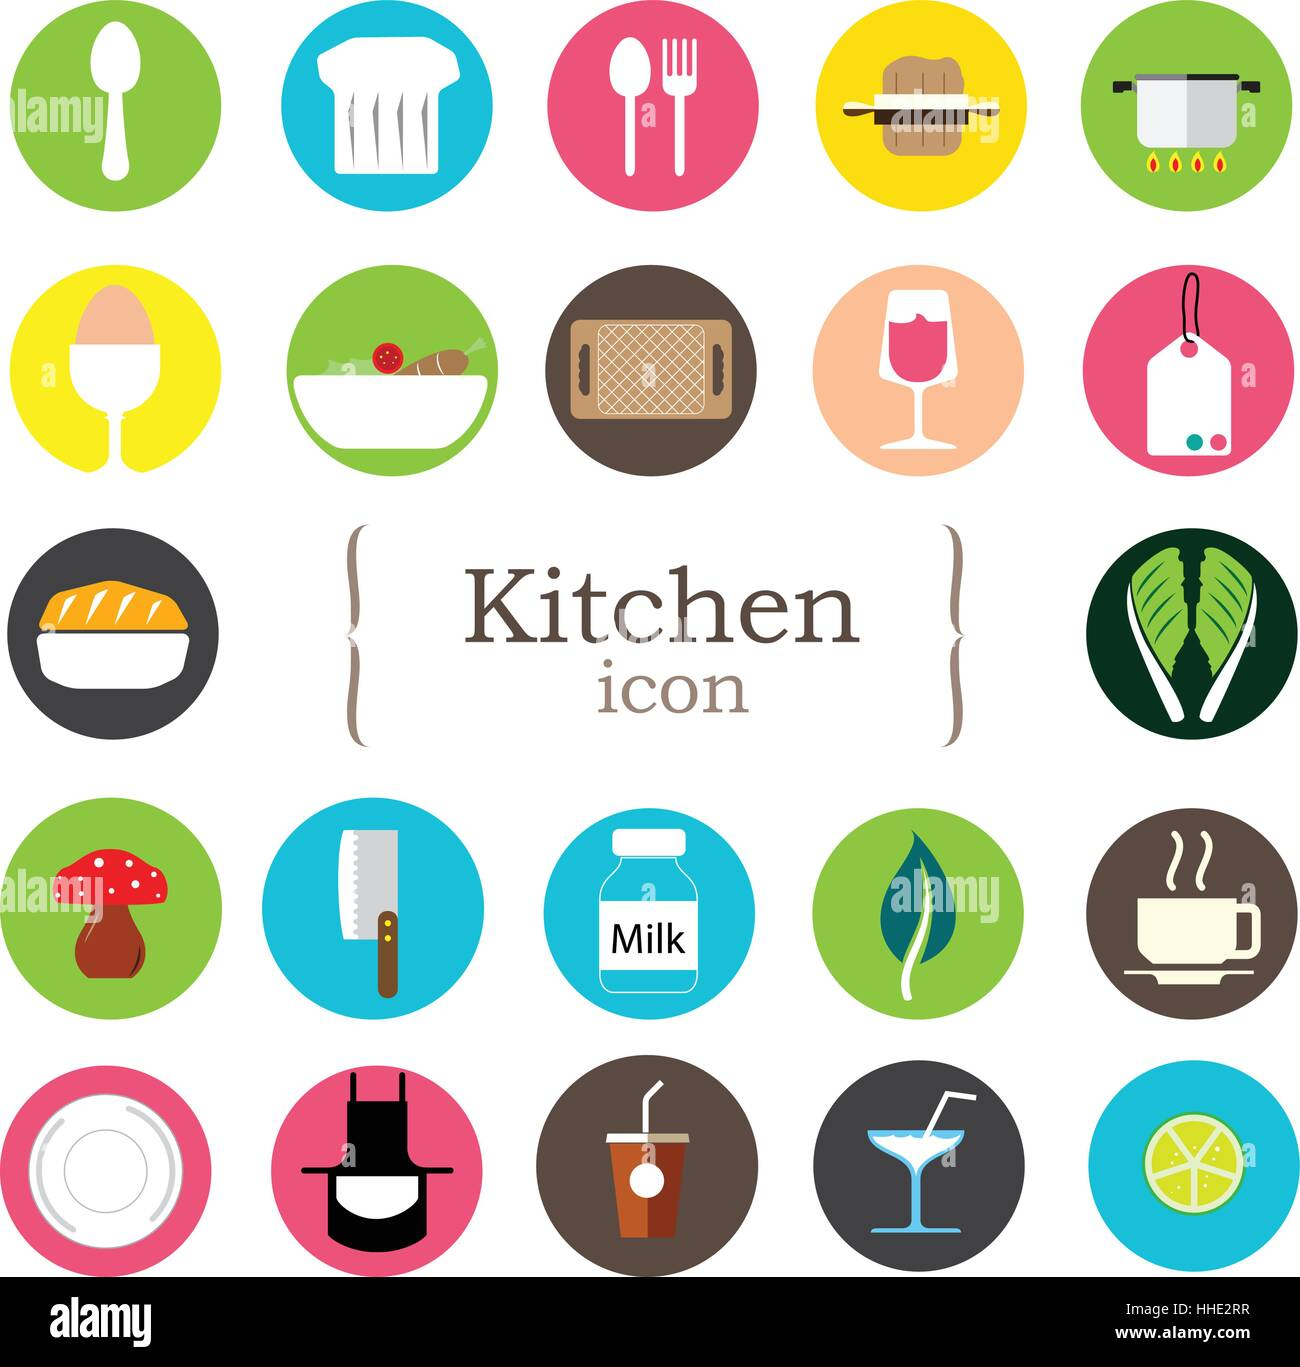 Kitchen Icons Set Food And Drink Flat Icons Vector Stock Vector Image Art Alamy